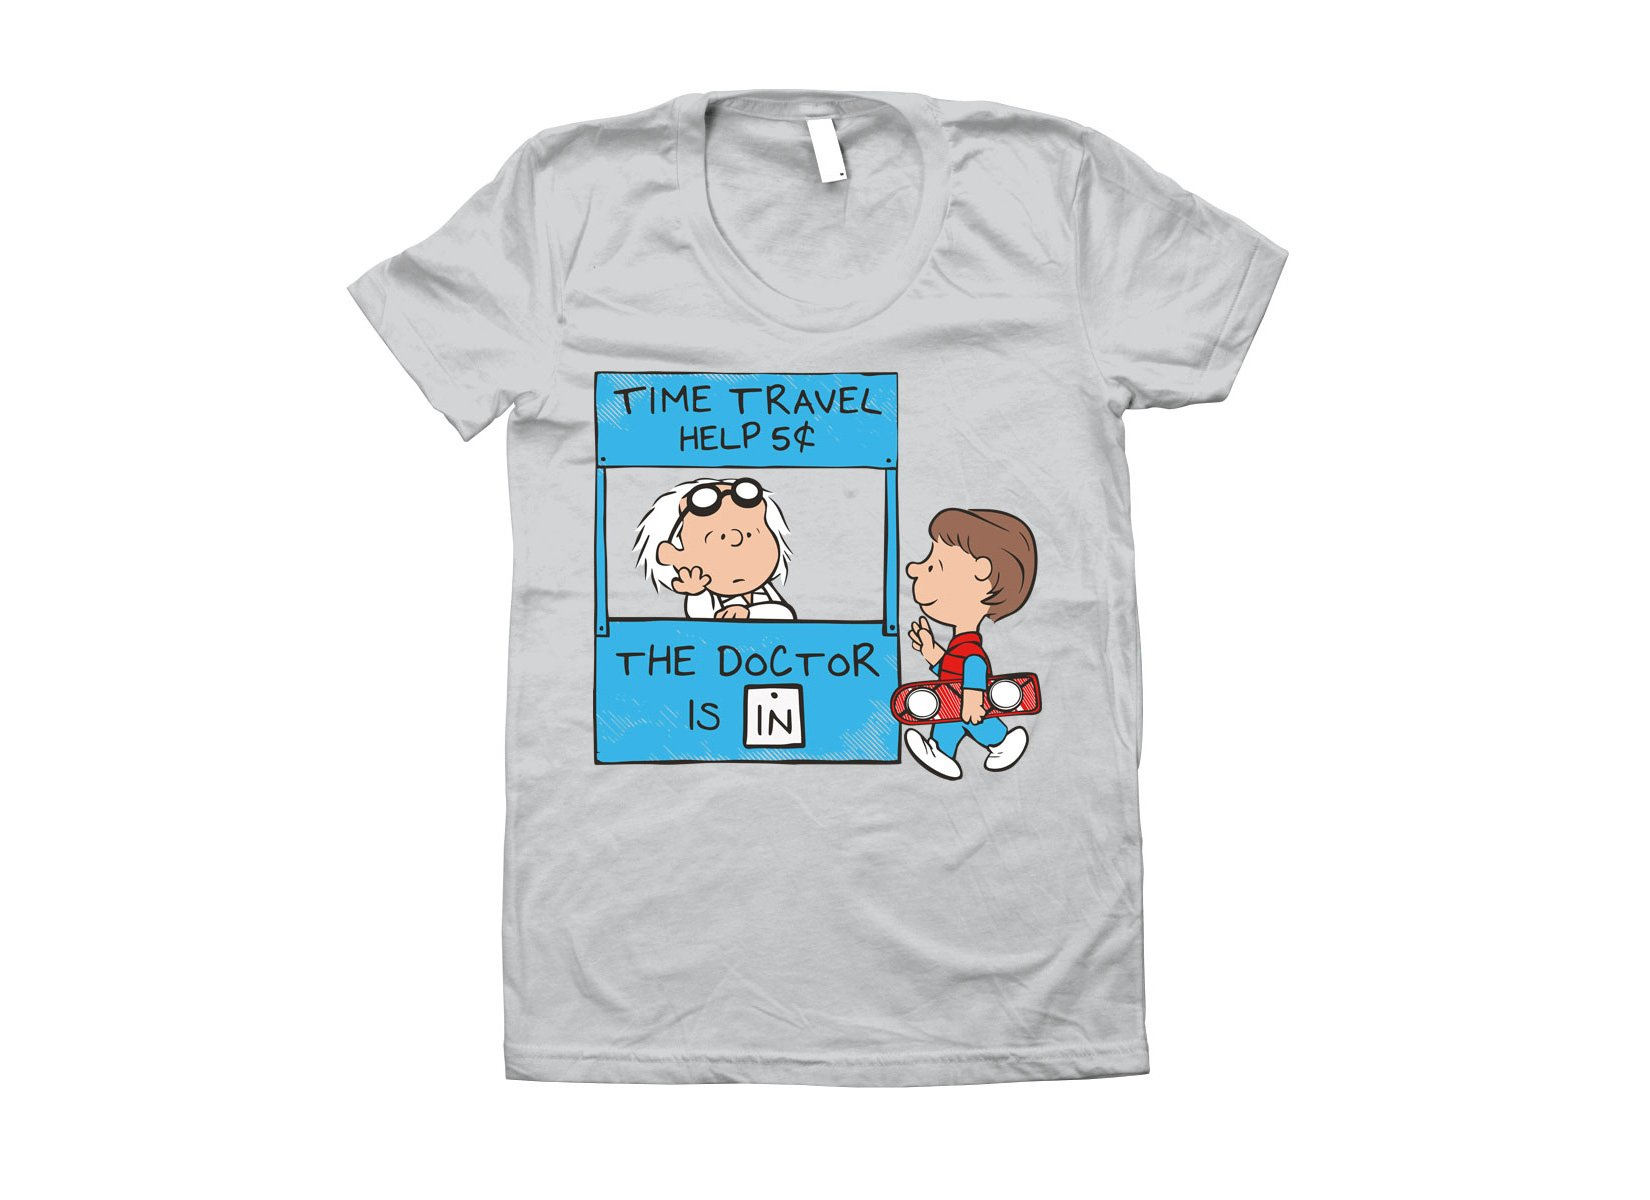 The Doctor Is In on Juniors T-Shirt